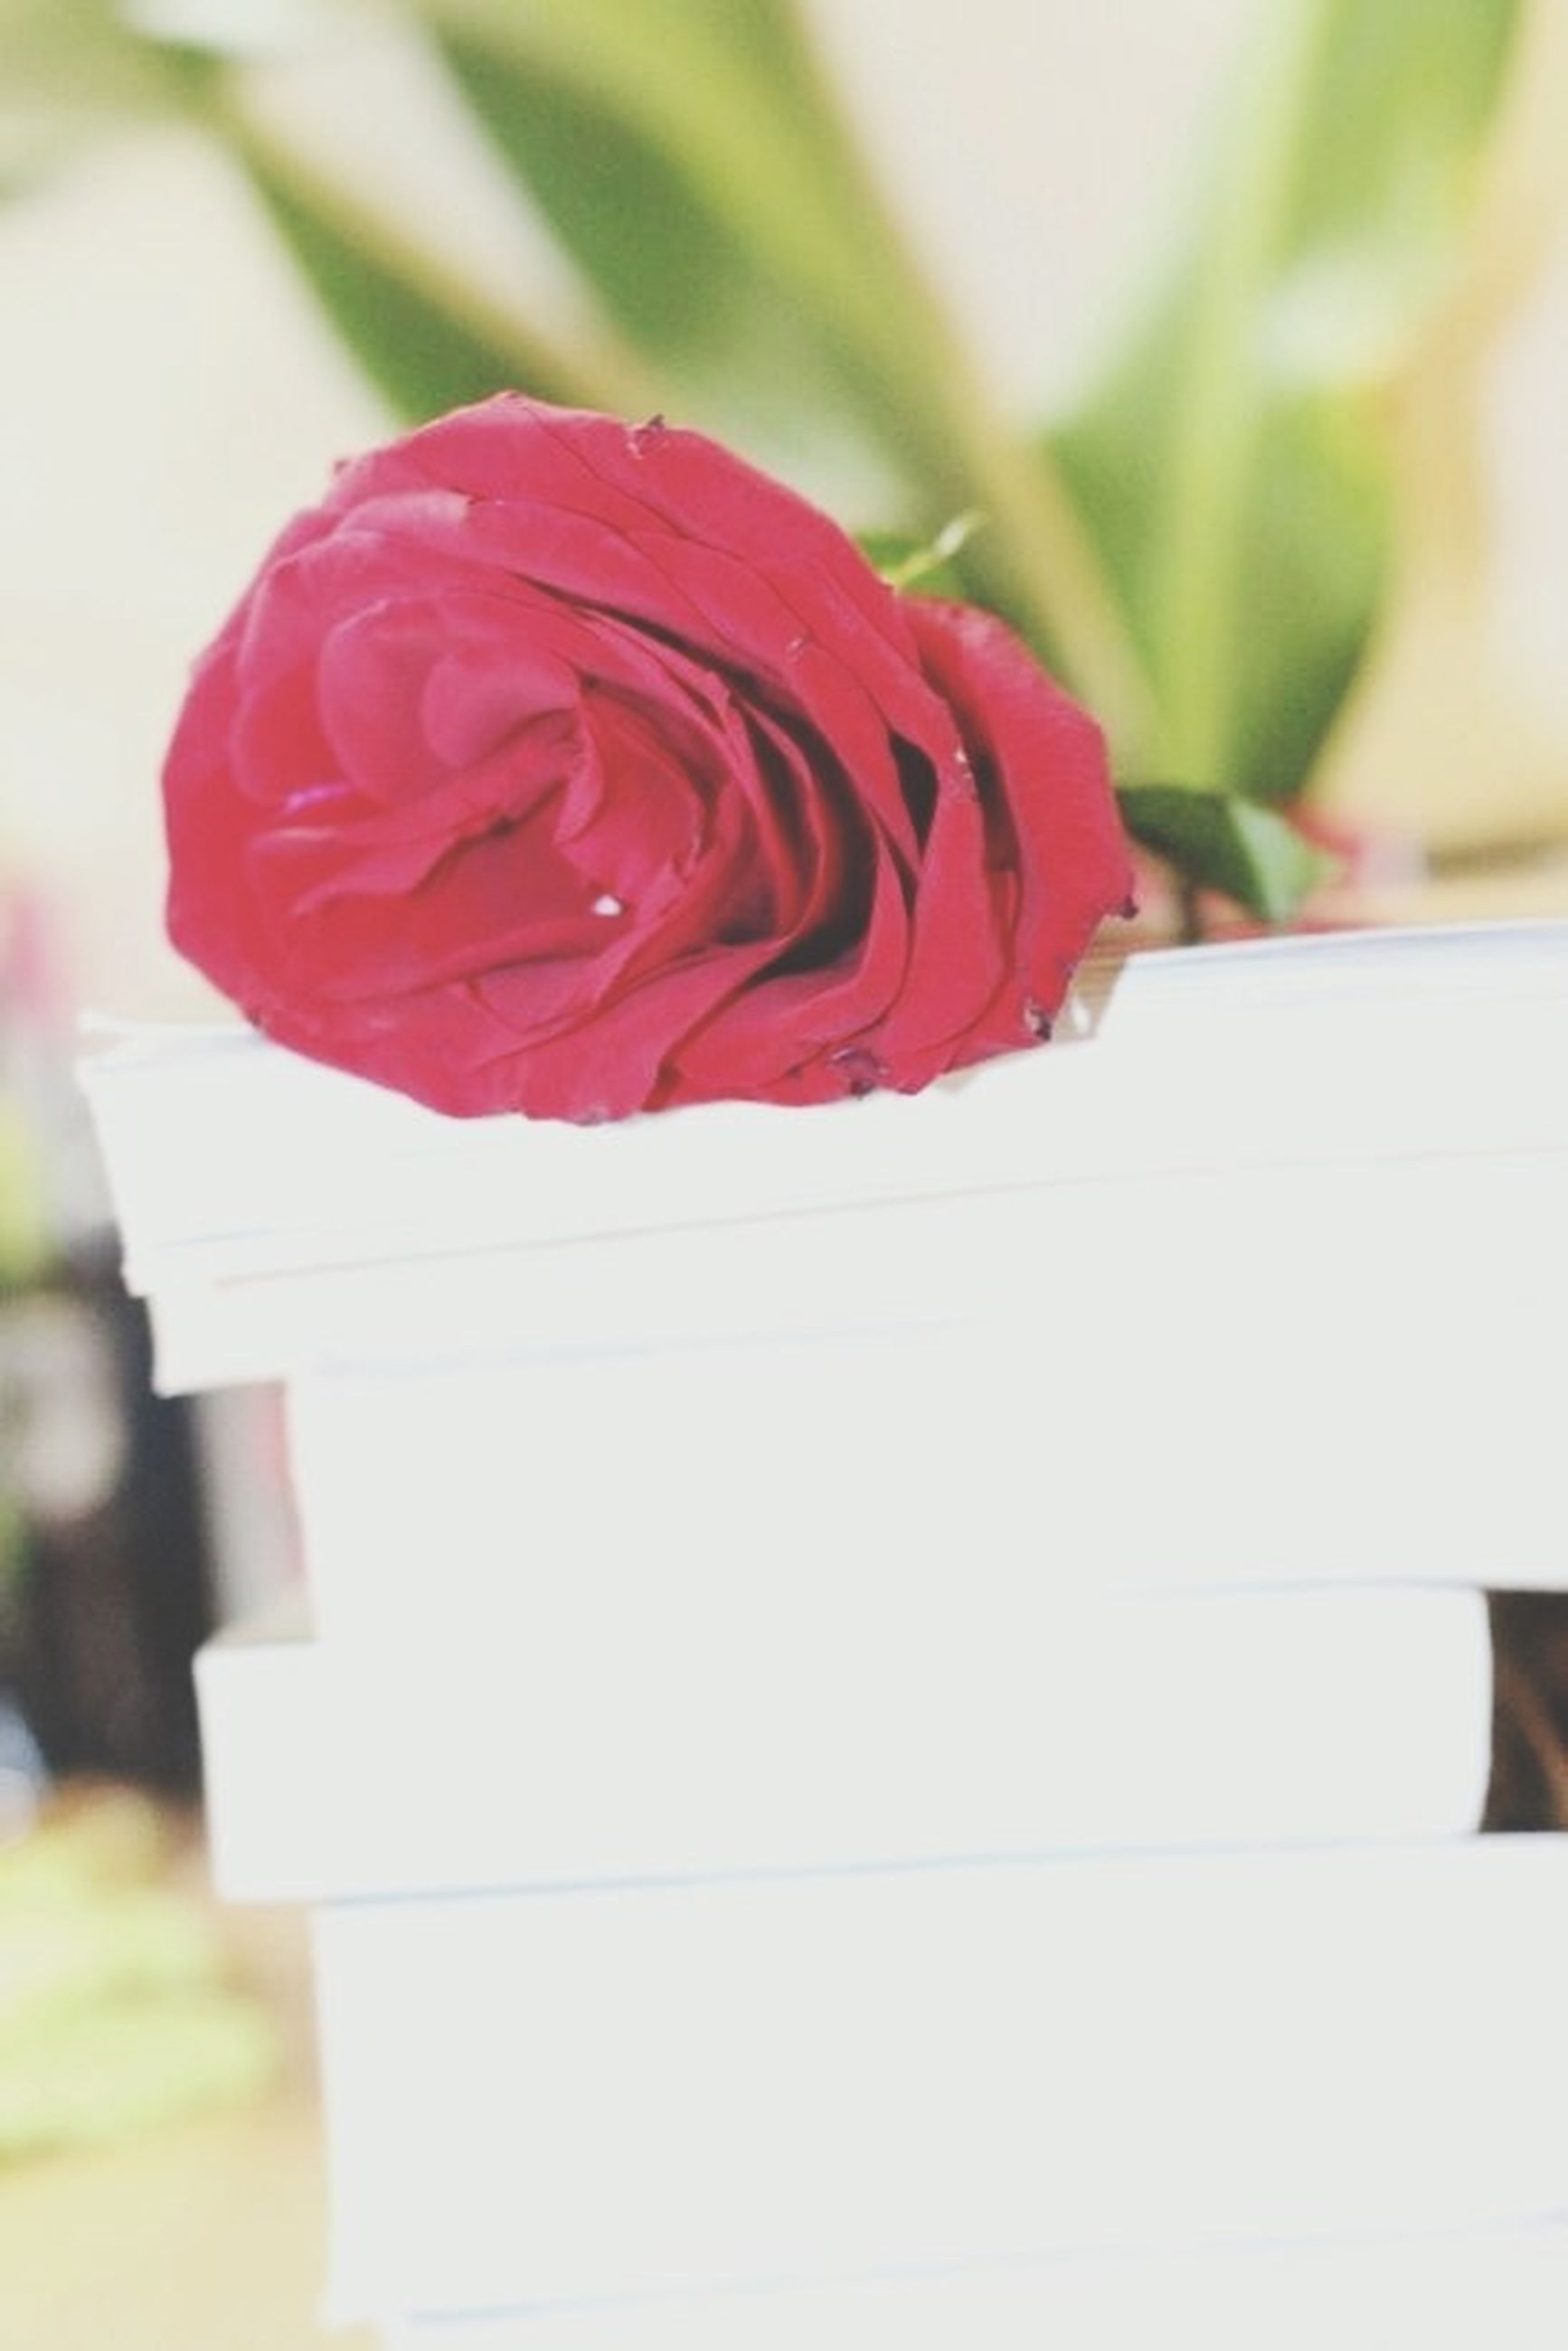 flower, close-up, red, focus on foreground, petal, indoors, flower head, selective focus, fragility, rose - flower, freshness, single flower, white color, pink color, beauty in nature, no people, nature, day, rose, growth